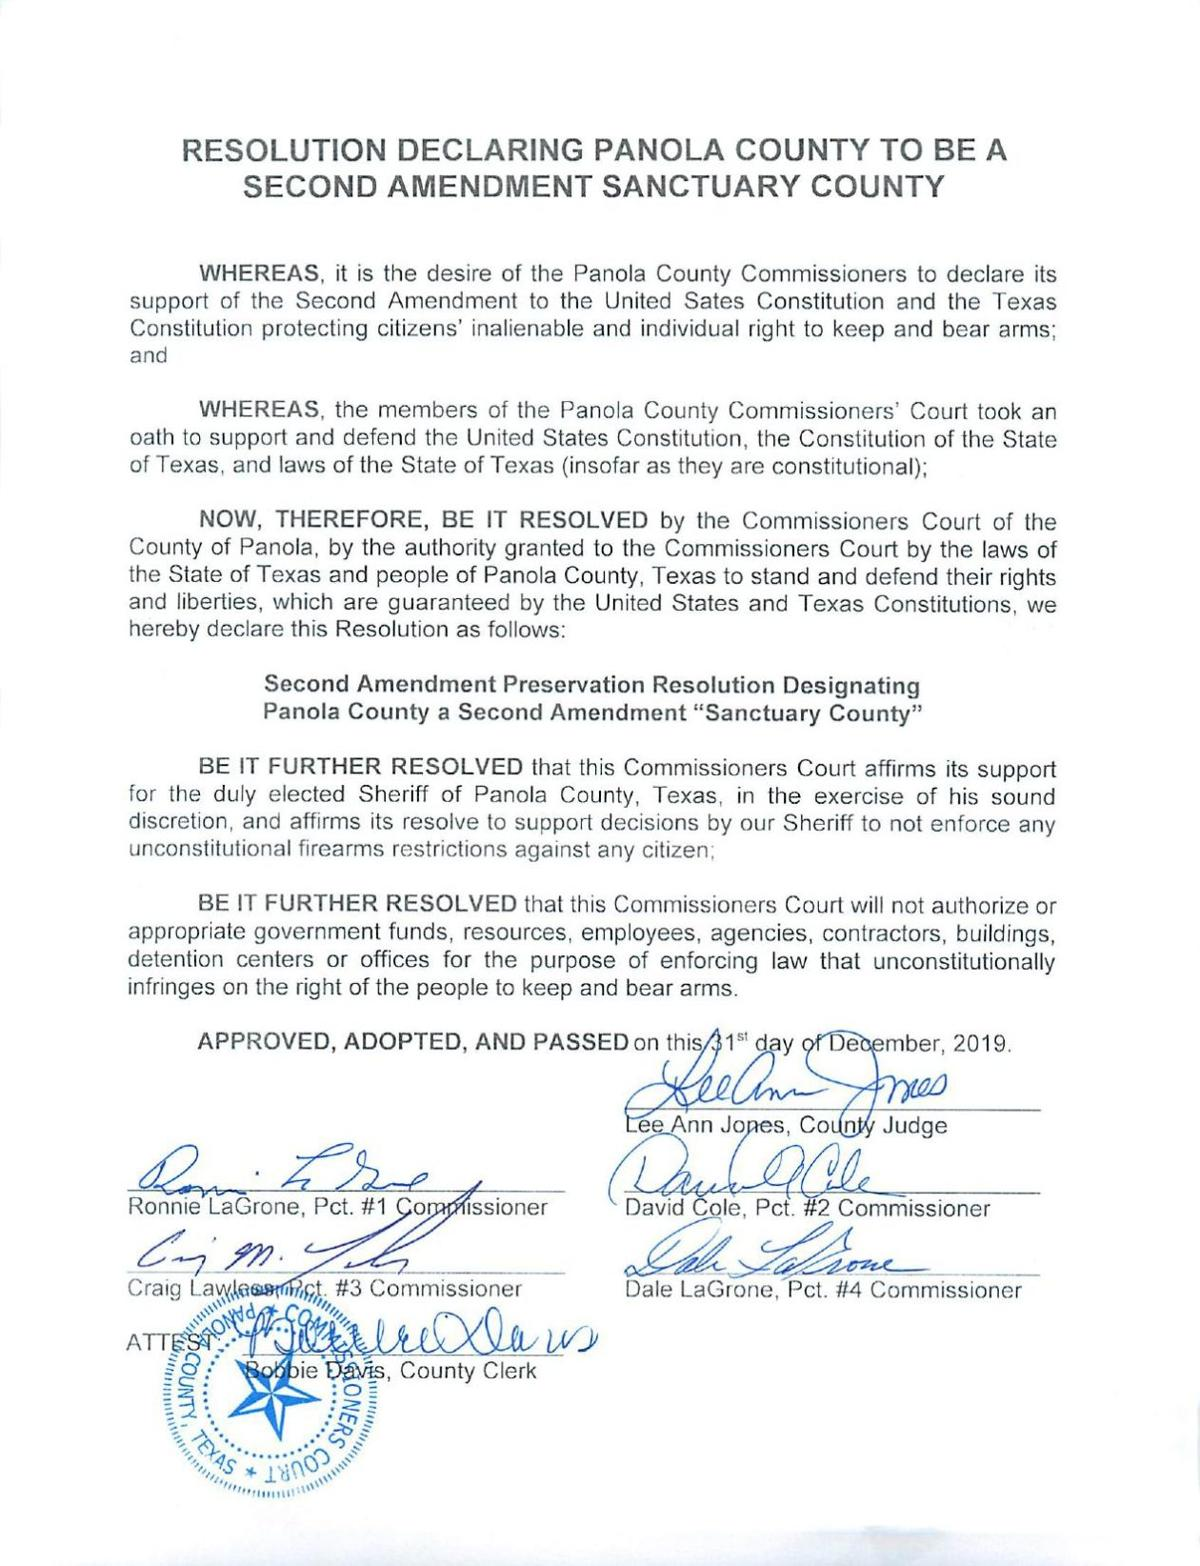 'Second Amendment Sanctuary County' resolution